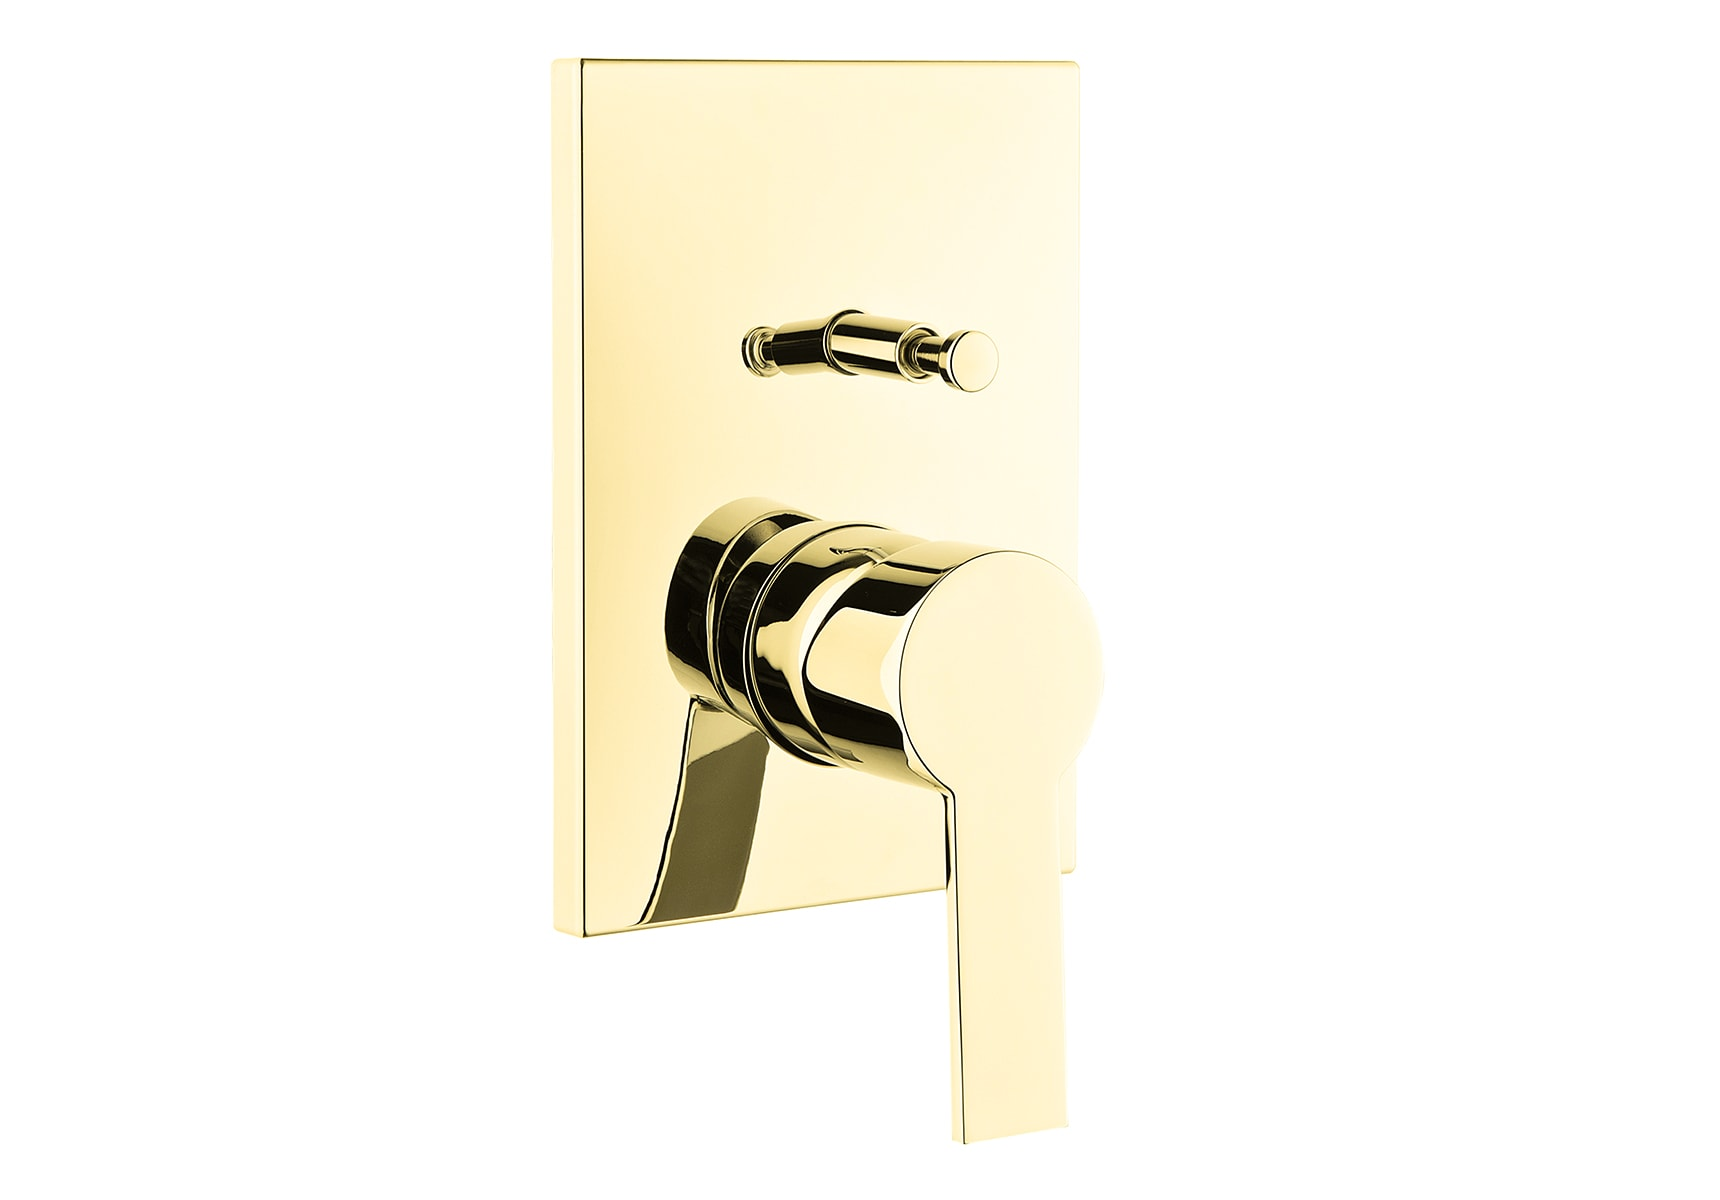 Flo S Built-In Bath/Shower Mixer , Exposed Part, Gold